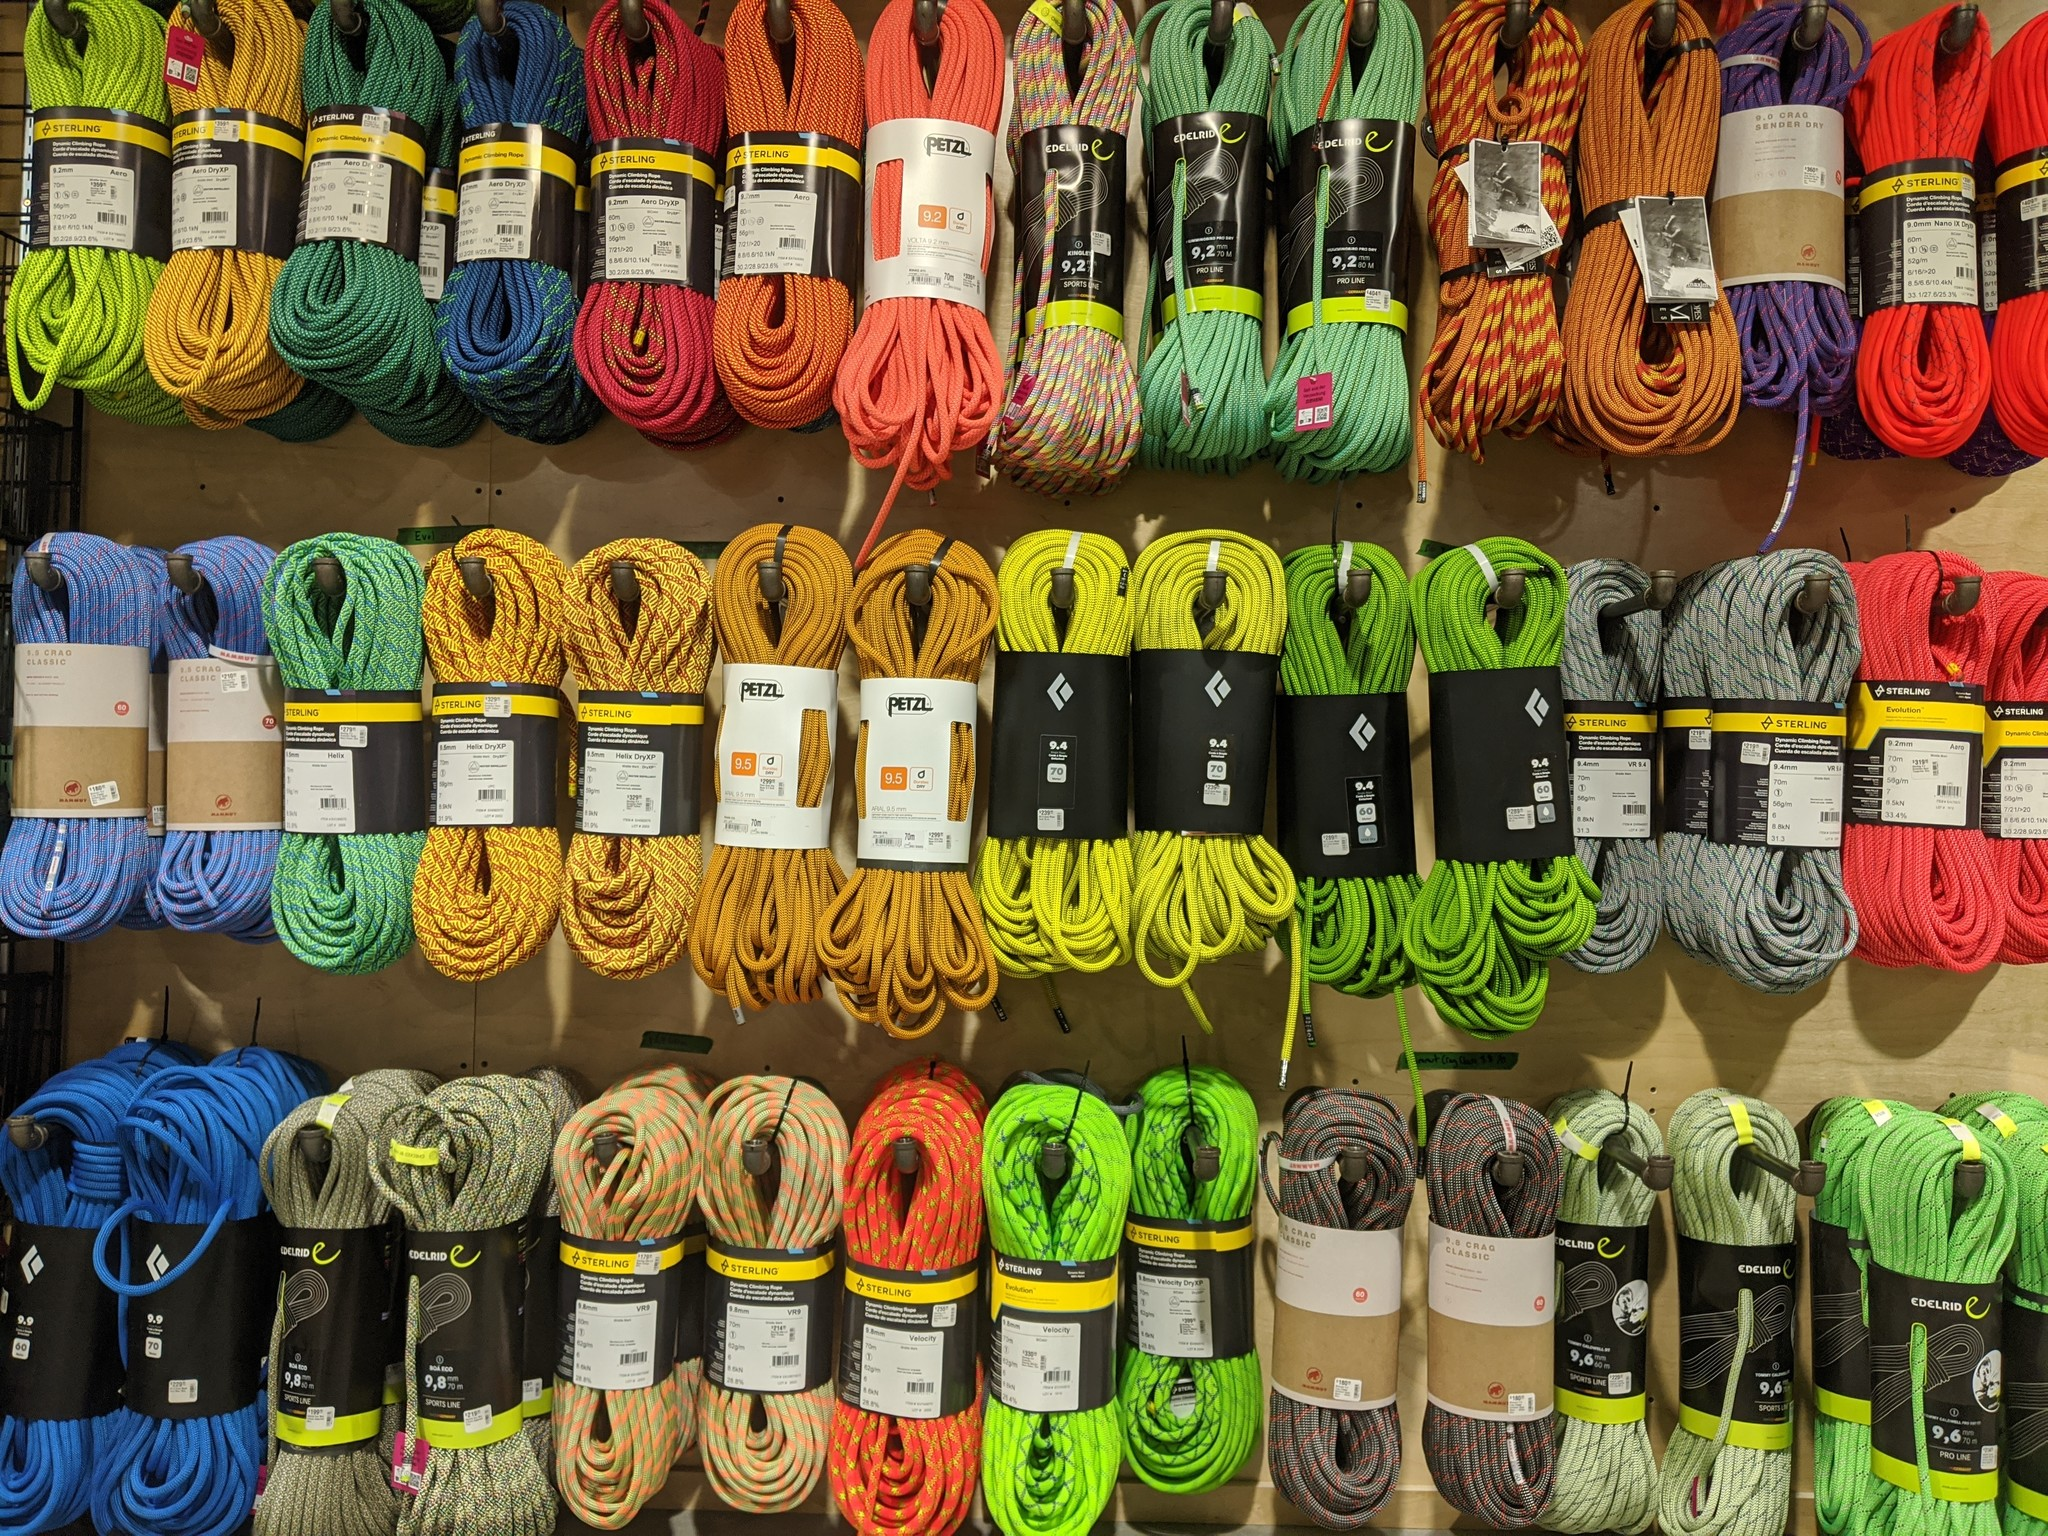 The Grand Climbing Rope Buying Guide